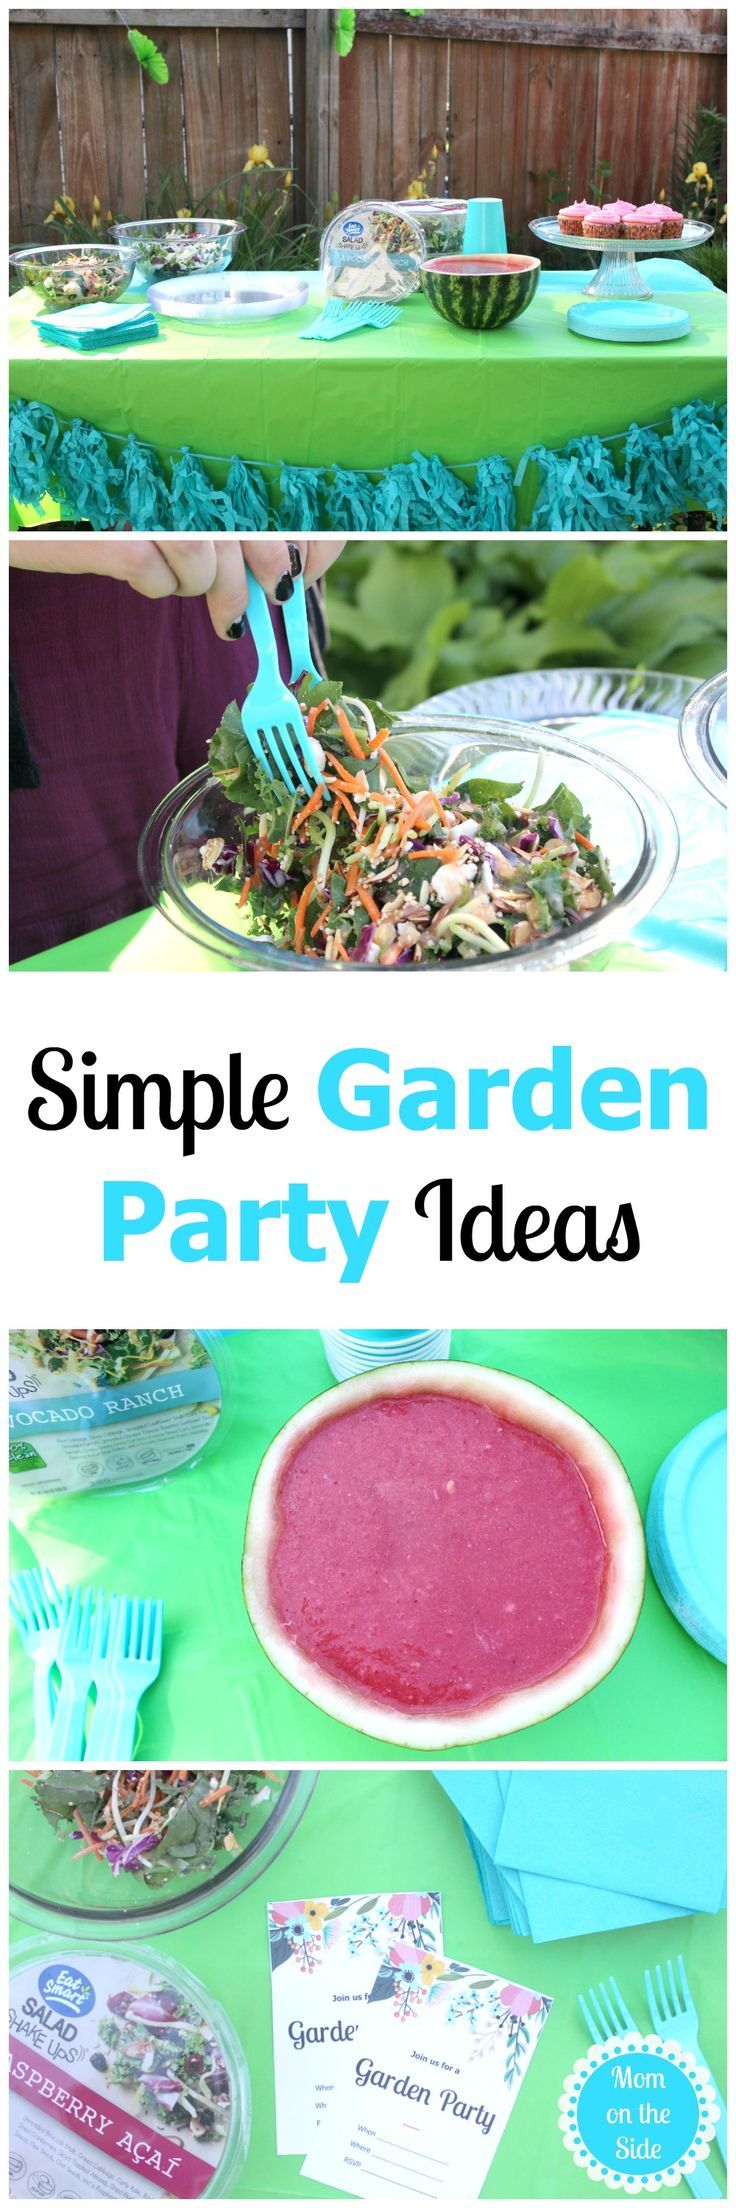 Simple Garden Party Ideas | Eat smart